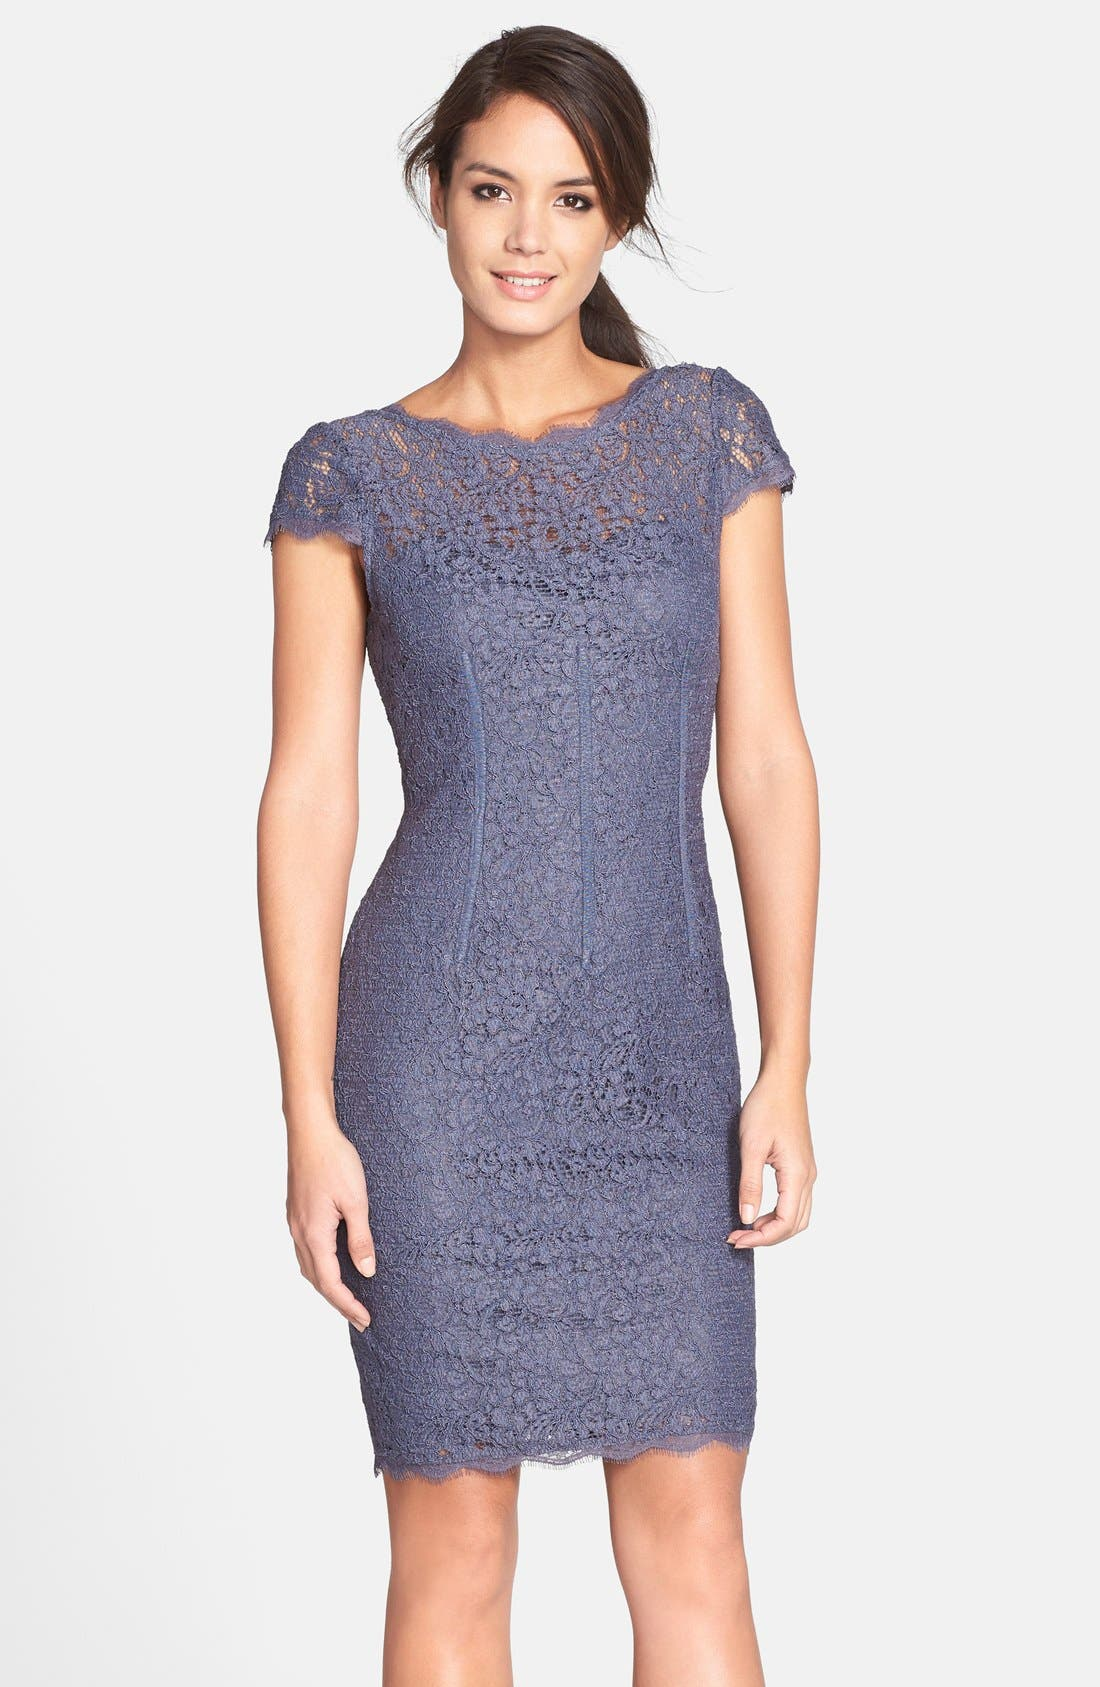 Alternate Image 1 Selected - Adrianna Papell Seam Detail Lace Cocktail Dress